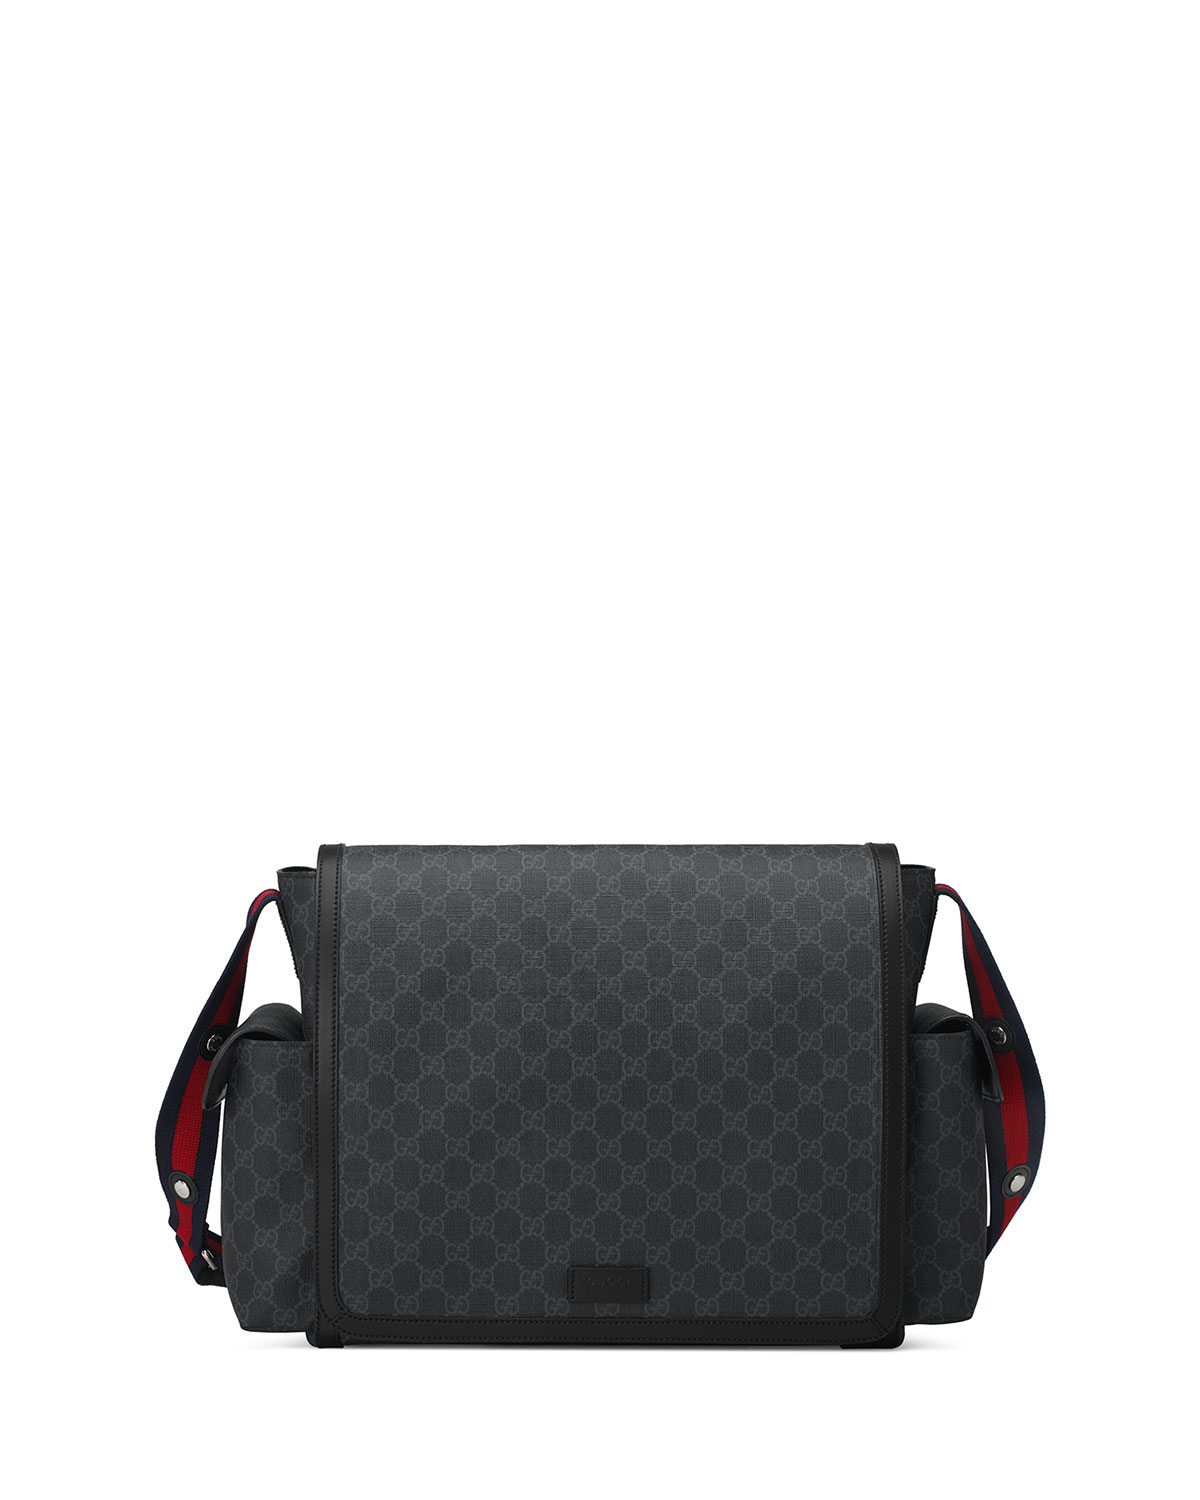 Basic Gg Supreme Canvas Diaper Bag Black